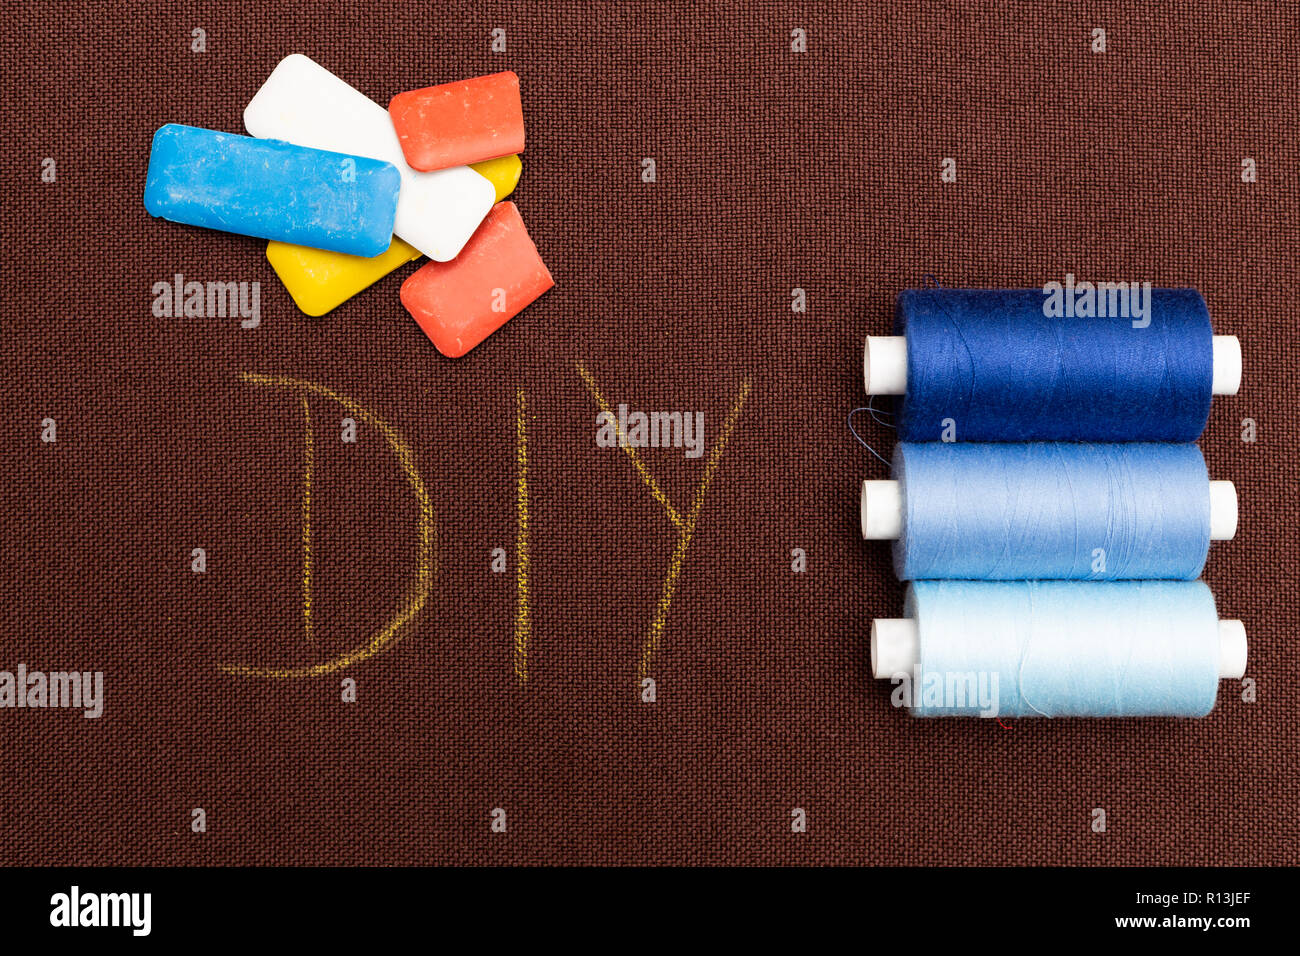 Brown material DIY as do it yourself concept written on it with coloured chalk and shades of blue thread spools nearby - Stock Image